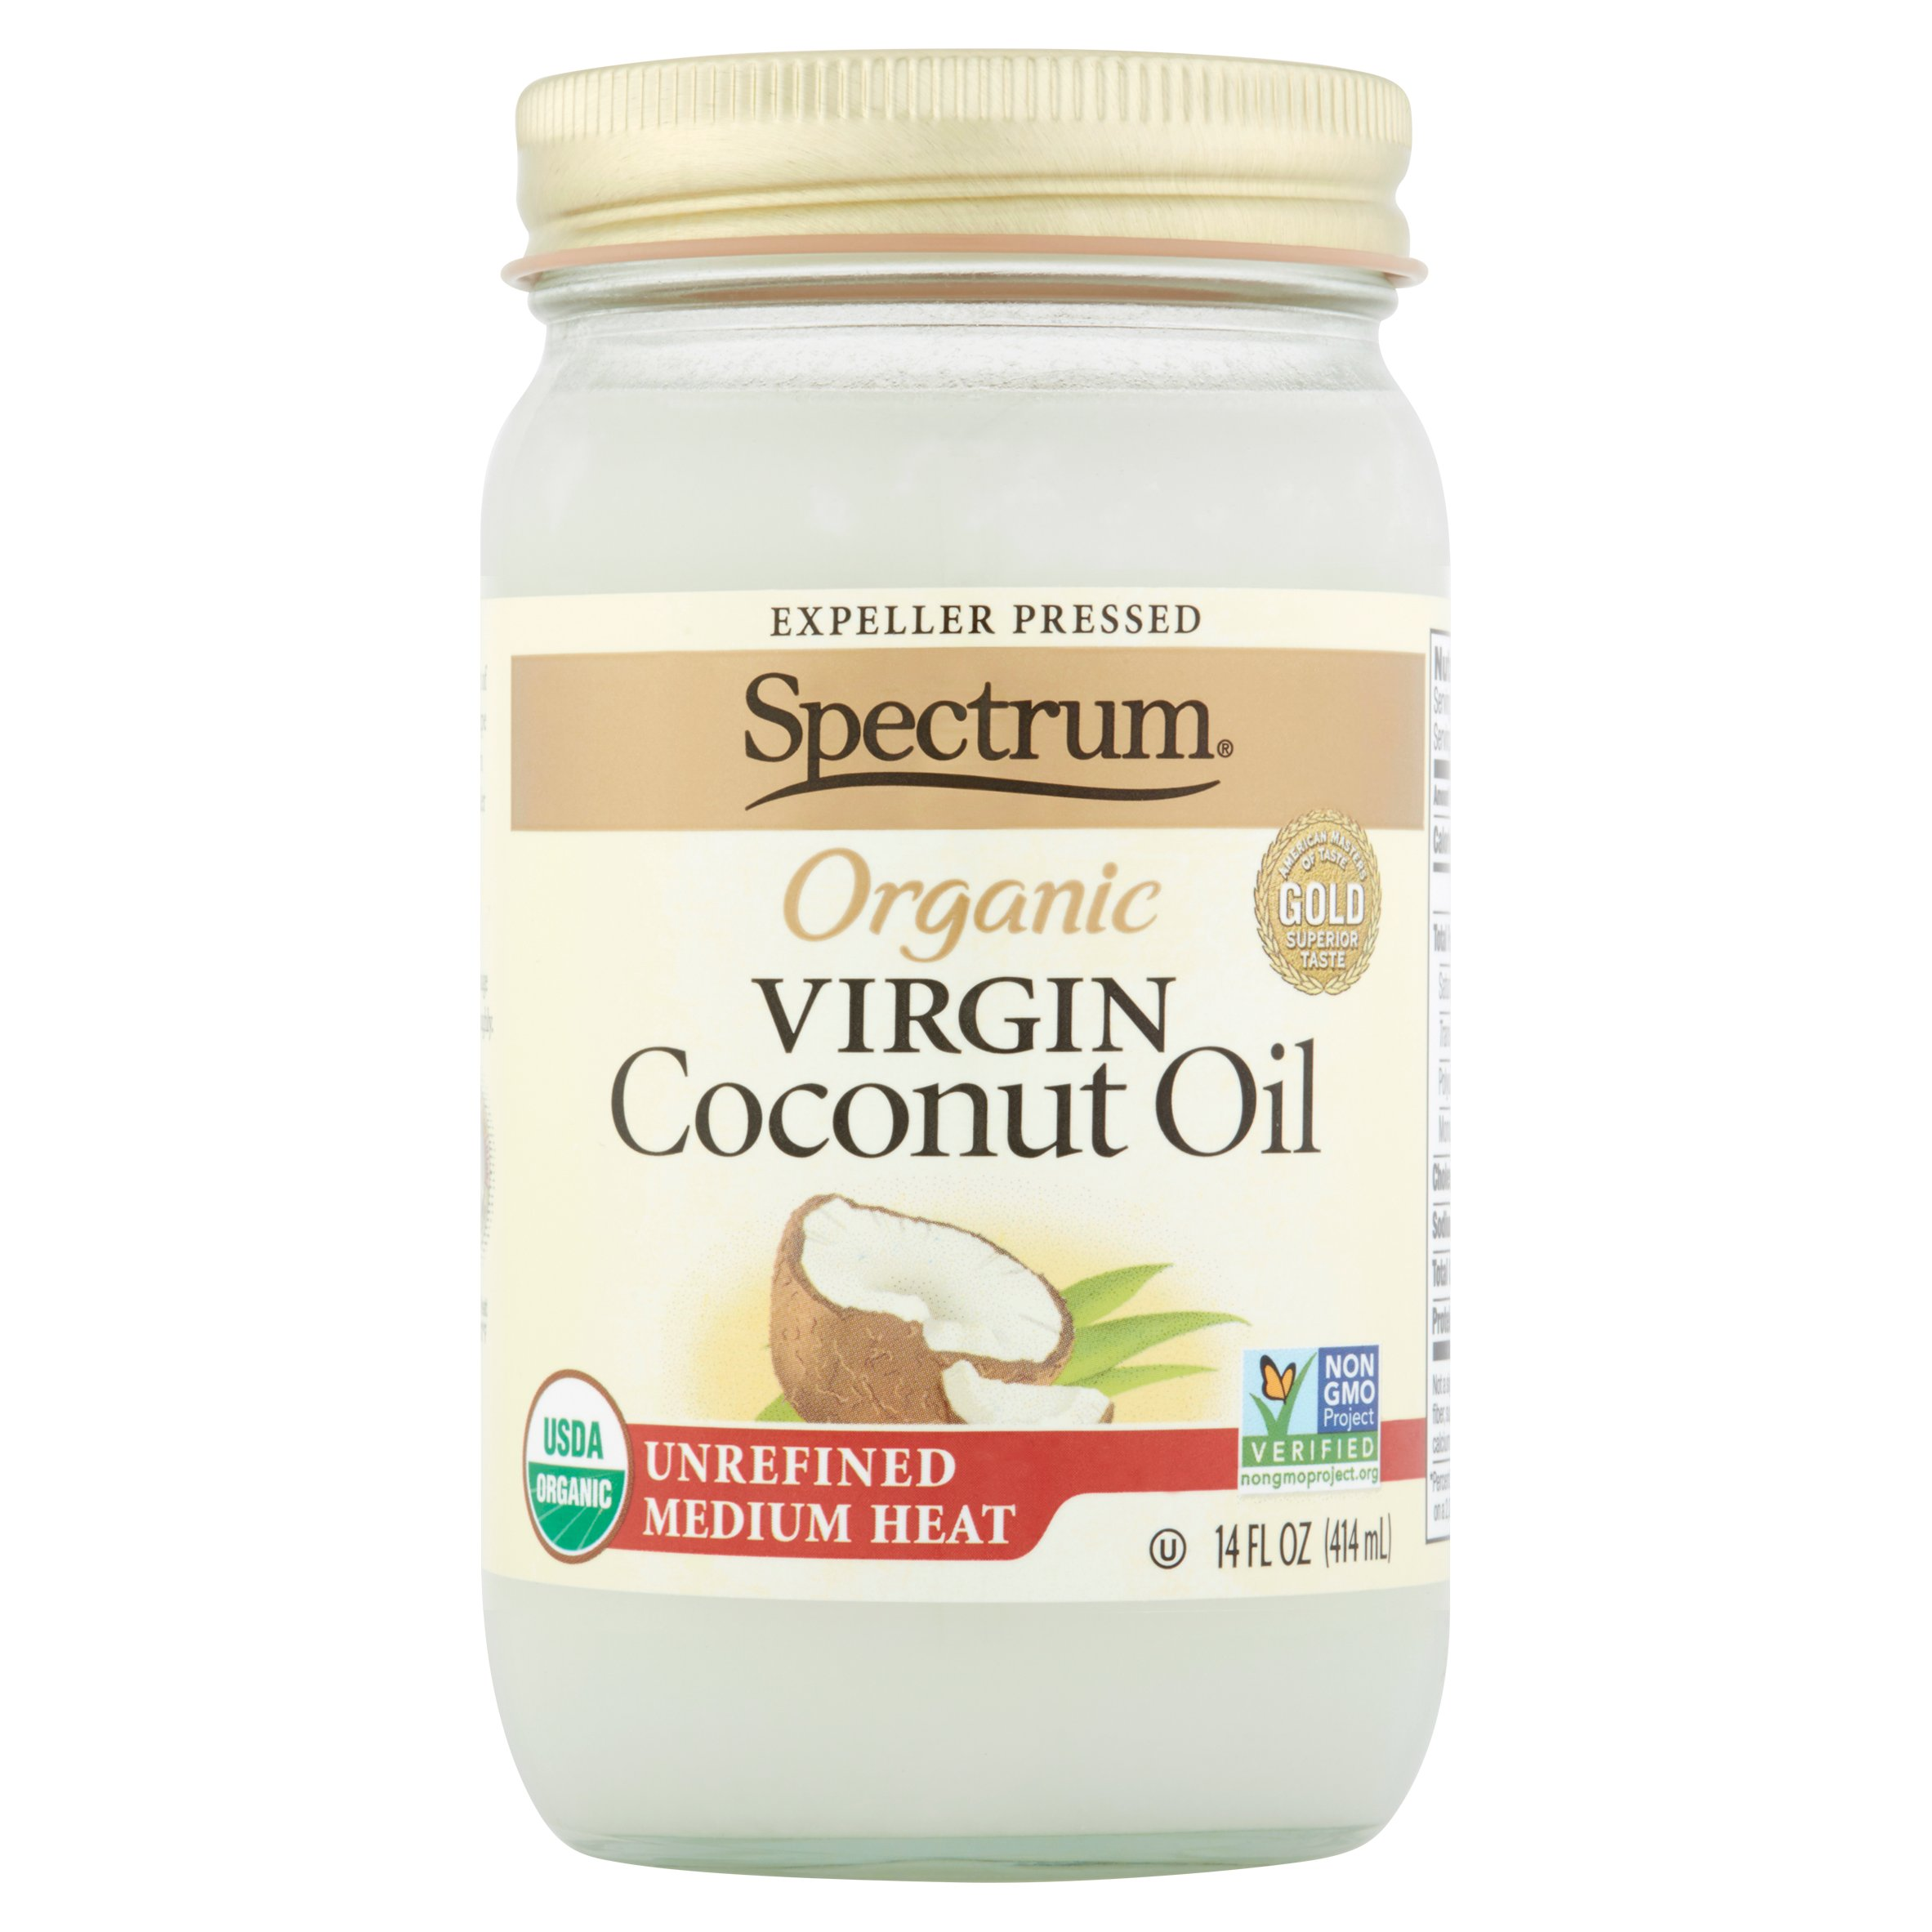 Spectrum Organic Virgin Coconut Oil, 6 pack, 14 fl oz